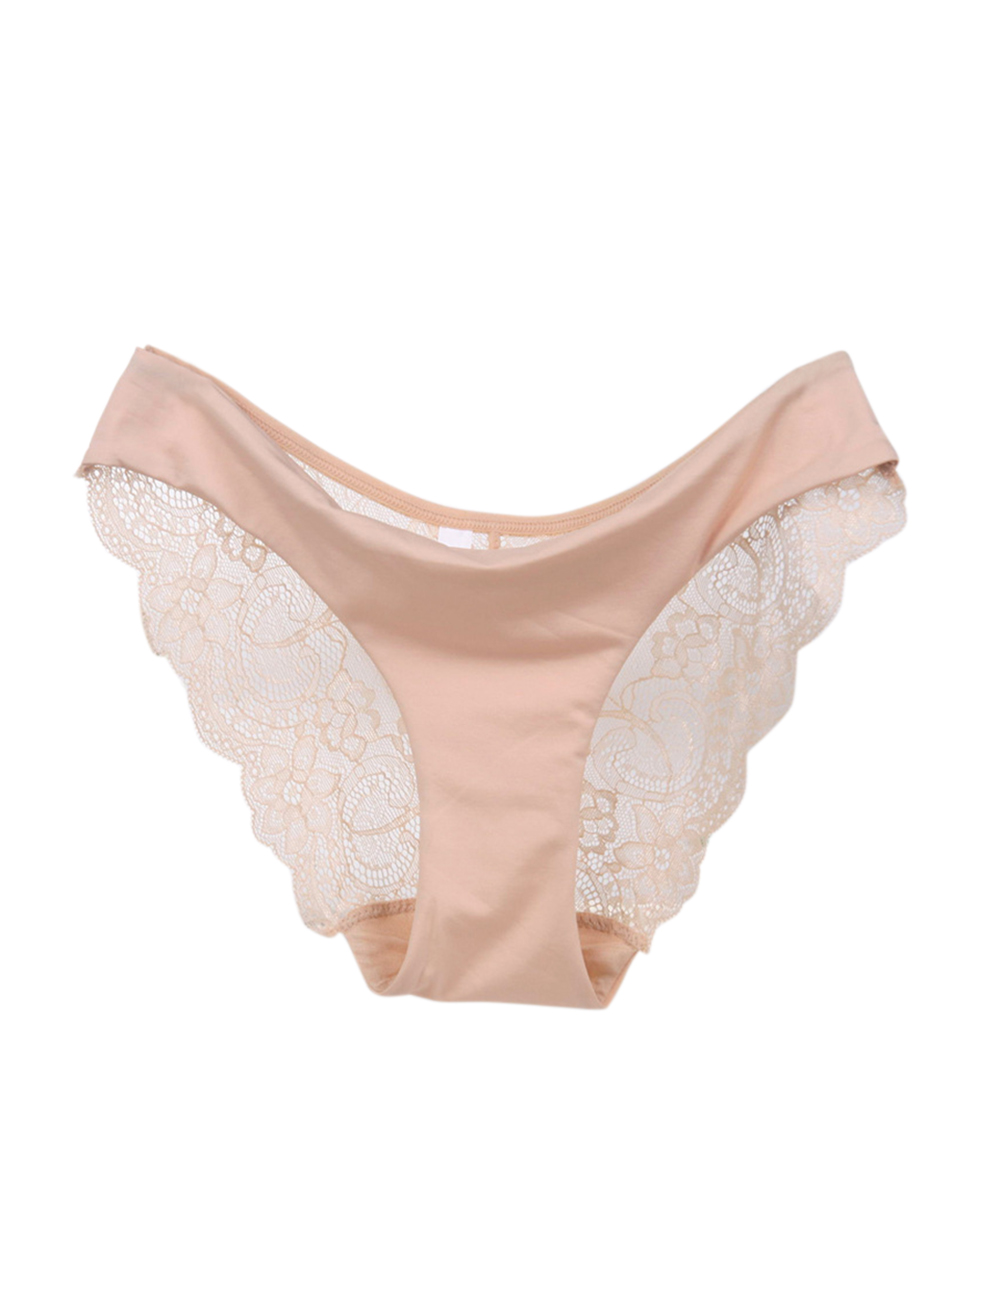 Woman Low Waist Lady Lace Lift Buttocks Large Size Hollow Sexy Briefs Underpants Underwear apricot_XL